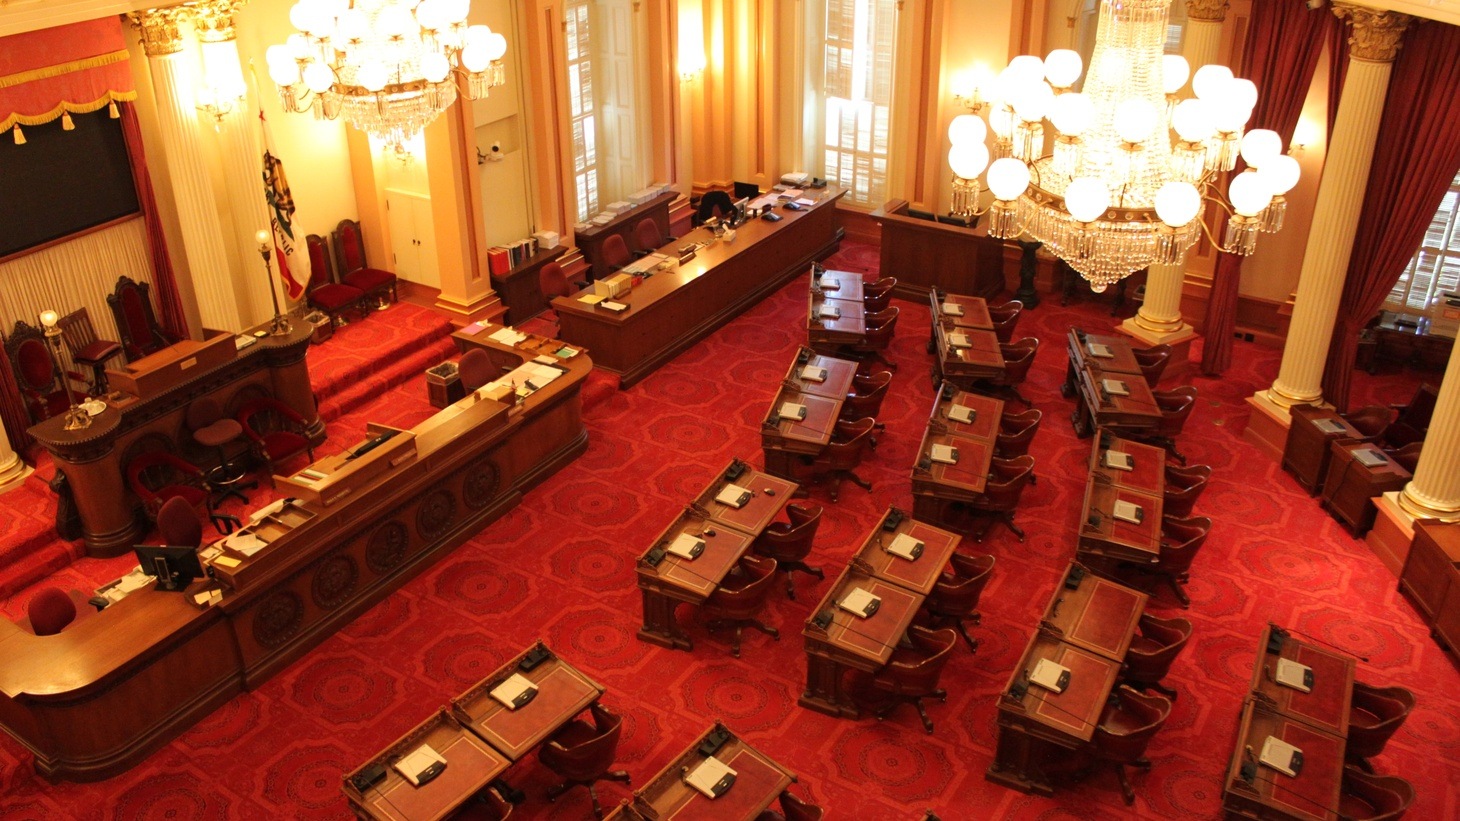 Senate Chamber at the California State Capitol